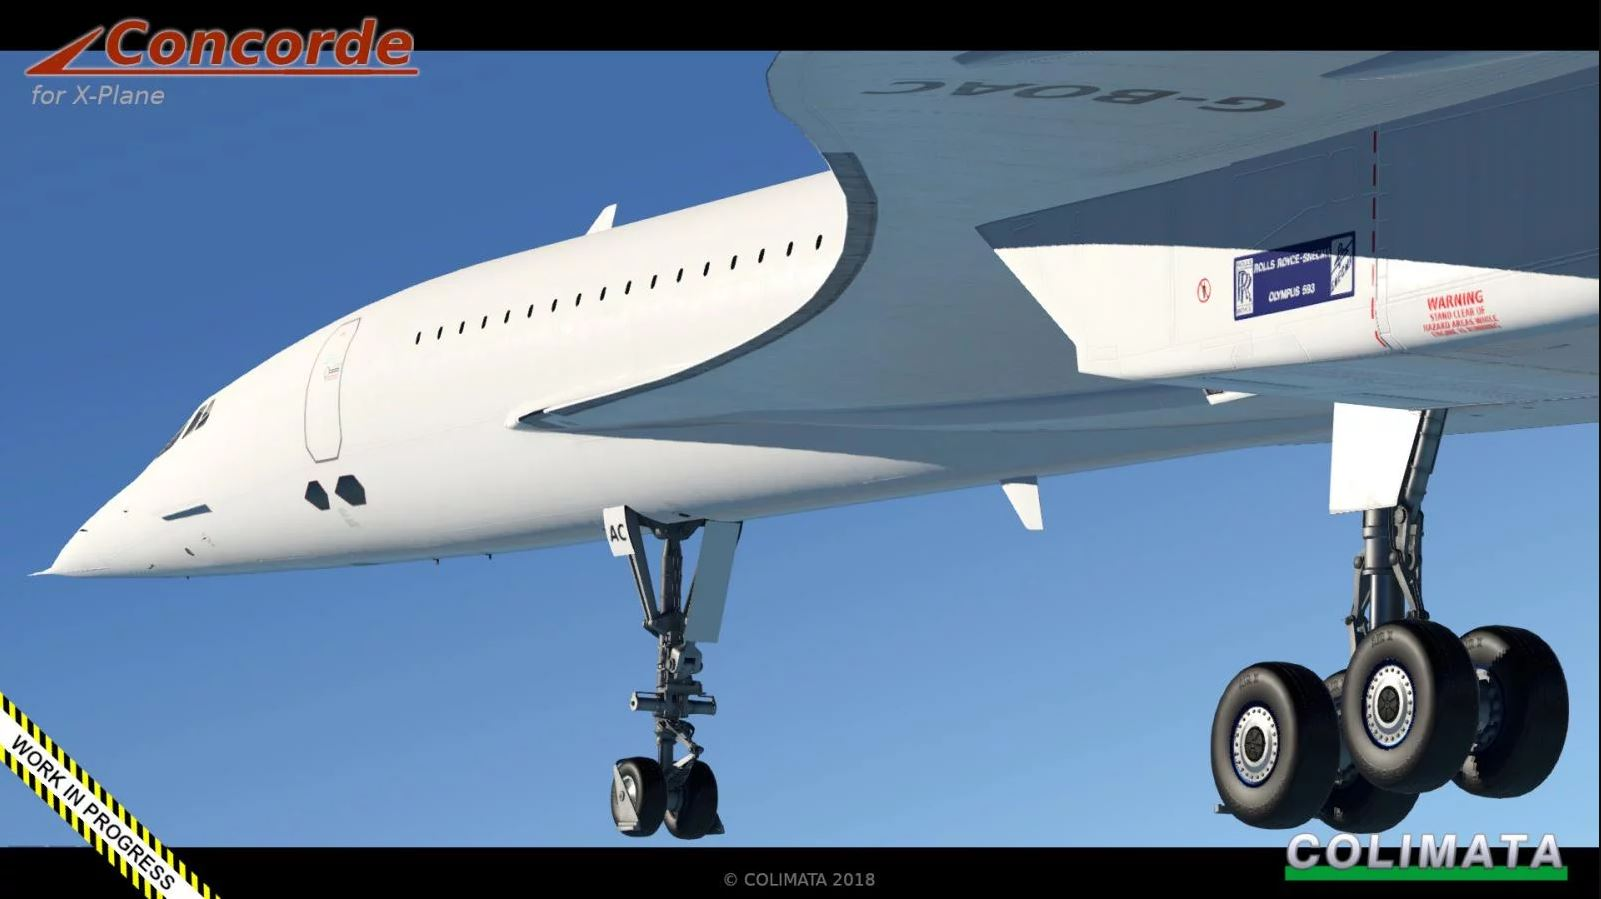 x-plane] Colimata Announces Early Access of Concorde on X